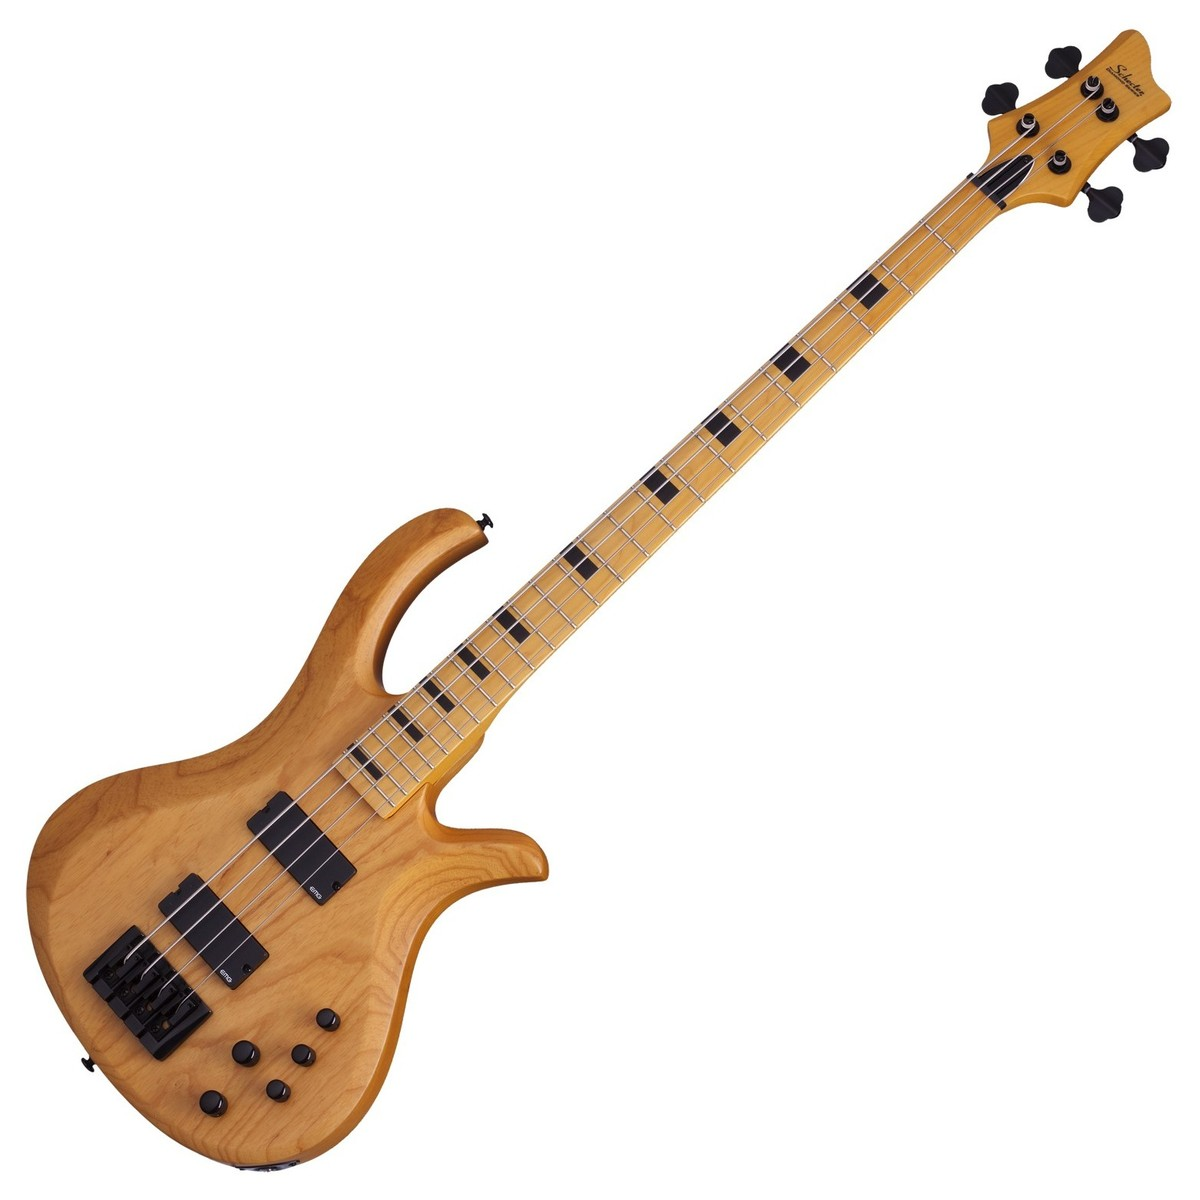 schecter riot session 4 bass guitar aged natural satin at gear4music. Black Bedroom Furniture Sets. Home Design Ideas